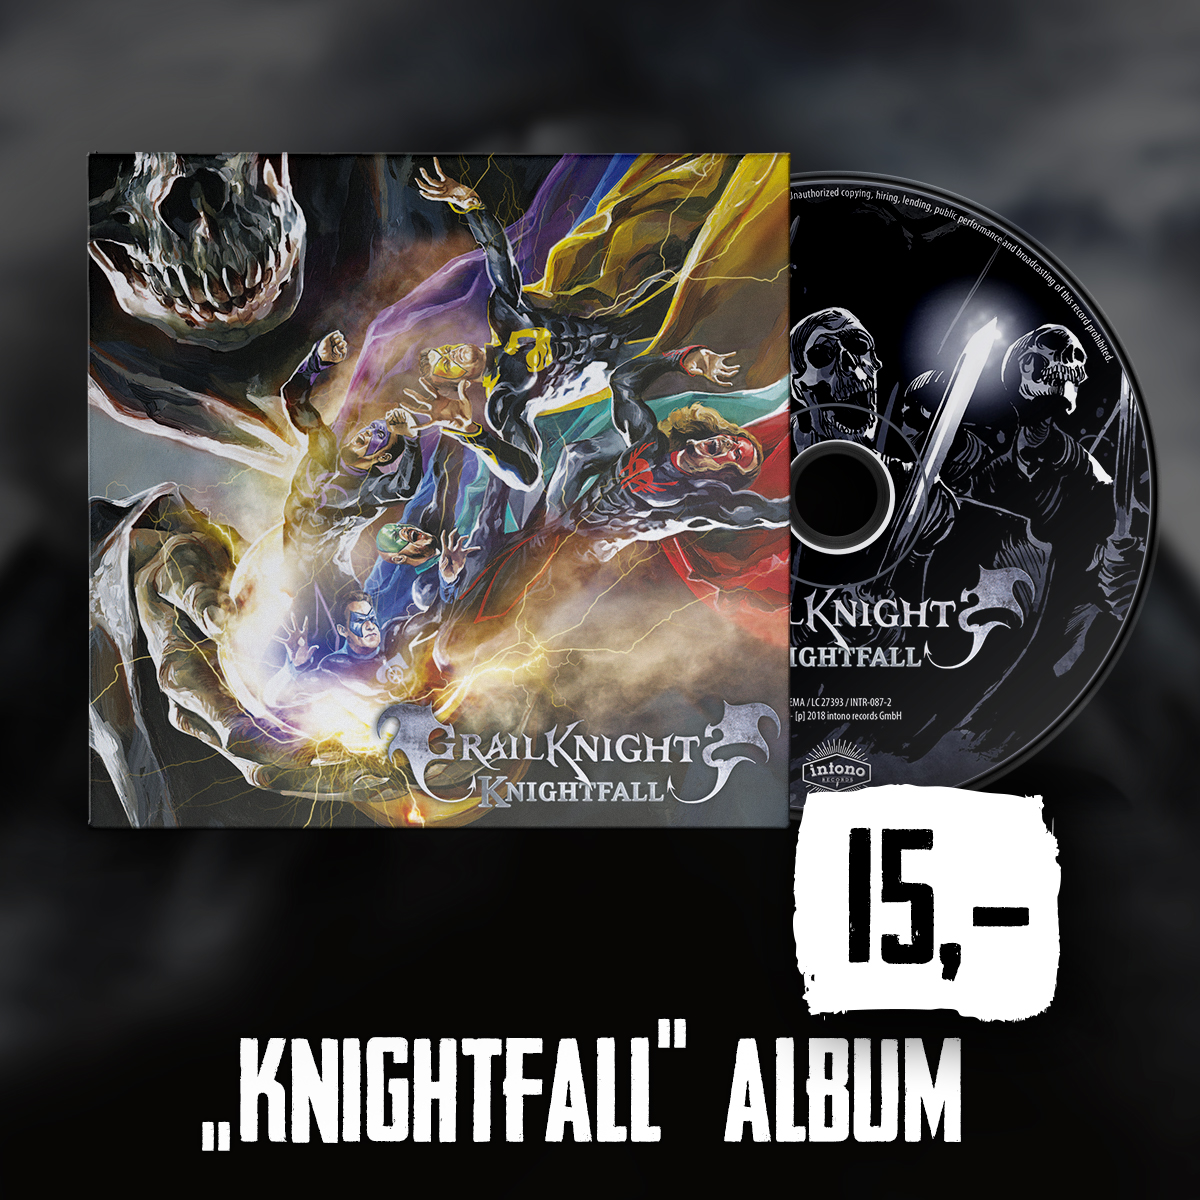 Knightfall Album